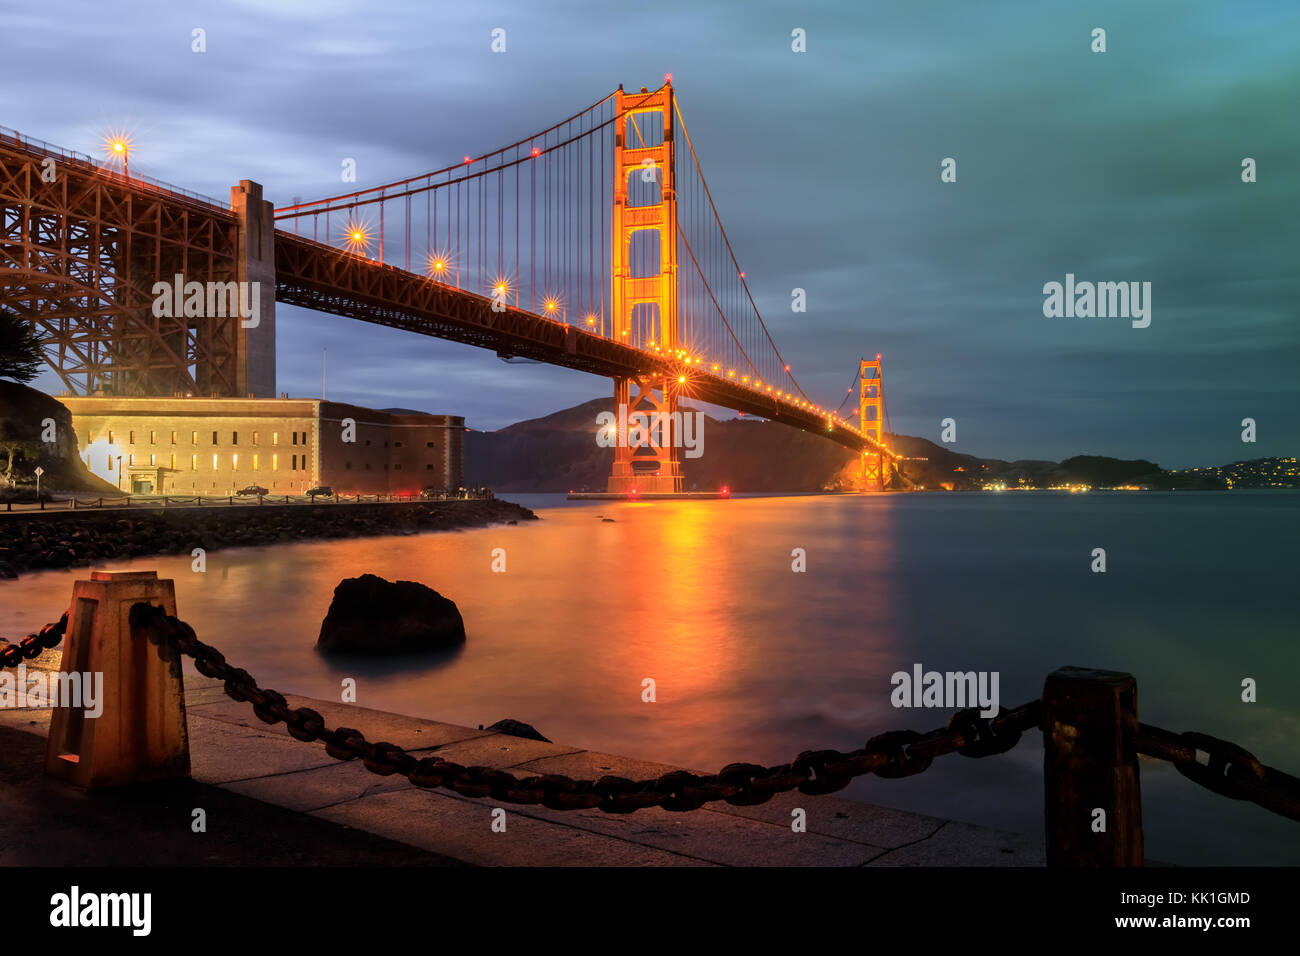 Golden Gate Bridge and chain link fence at Night. - Stock Image